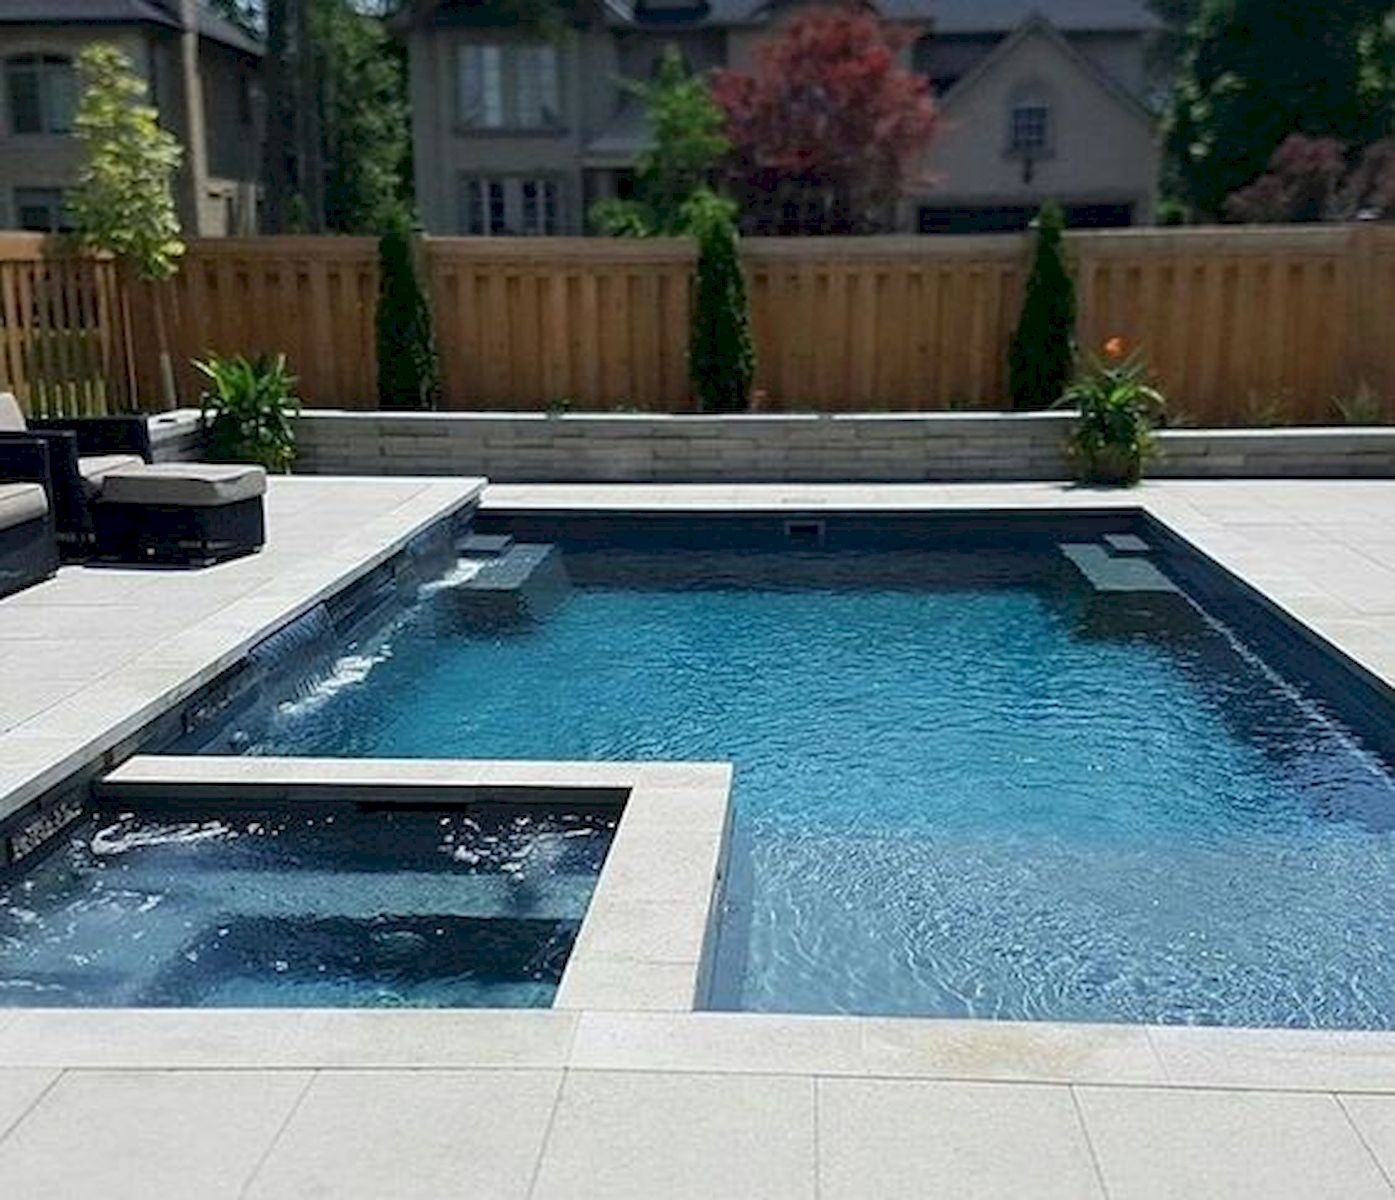 50 Gorgeous Small Swimming Pool Ideas For Small Backyard Backyard Pool Landscaping Small Backyard Pools Modern Pools Modern backyard with small pool